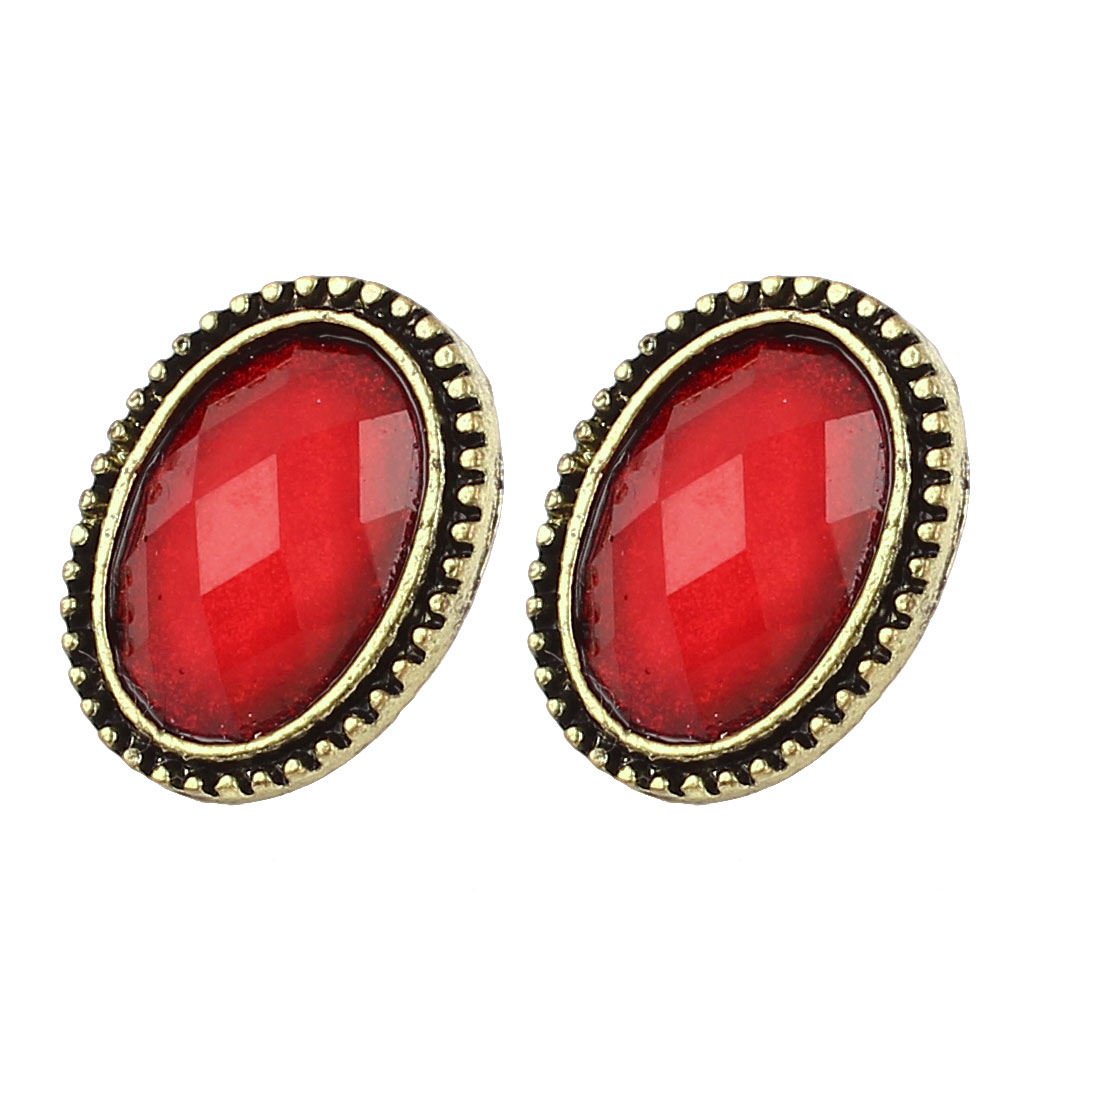 Pair Red Faced Rhinestone Oval Shaped Bronze Tone Stud Earring for Lady